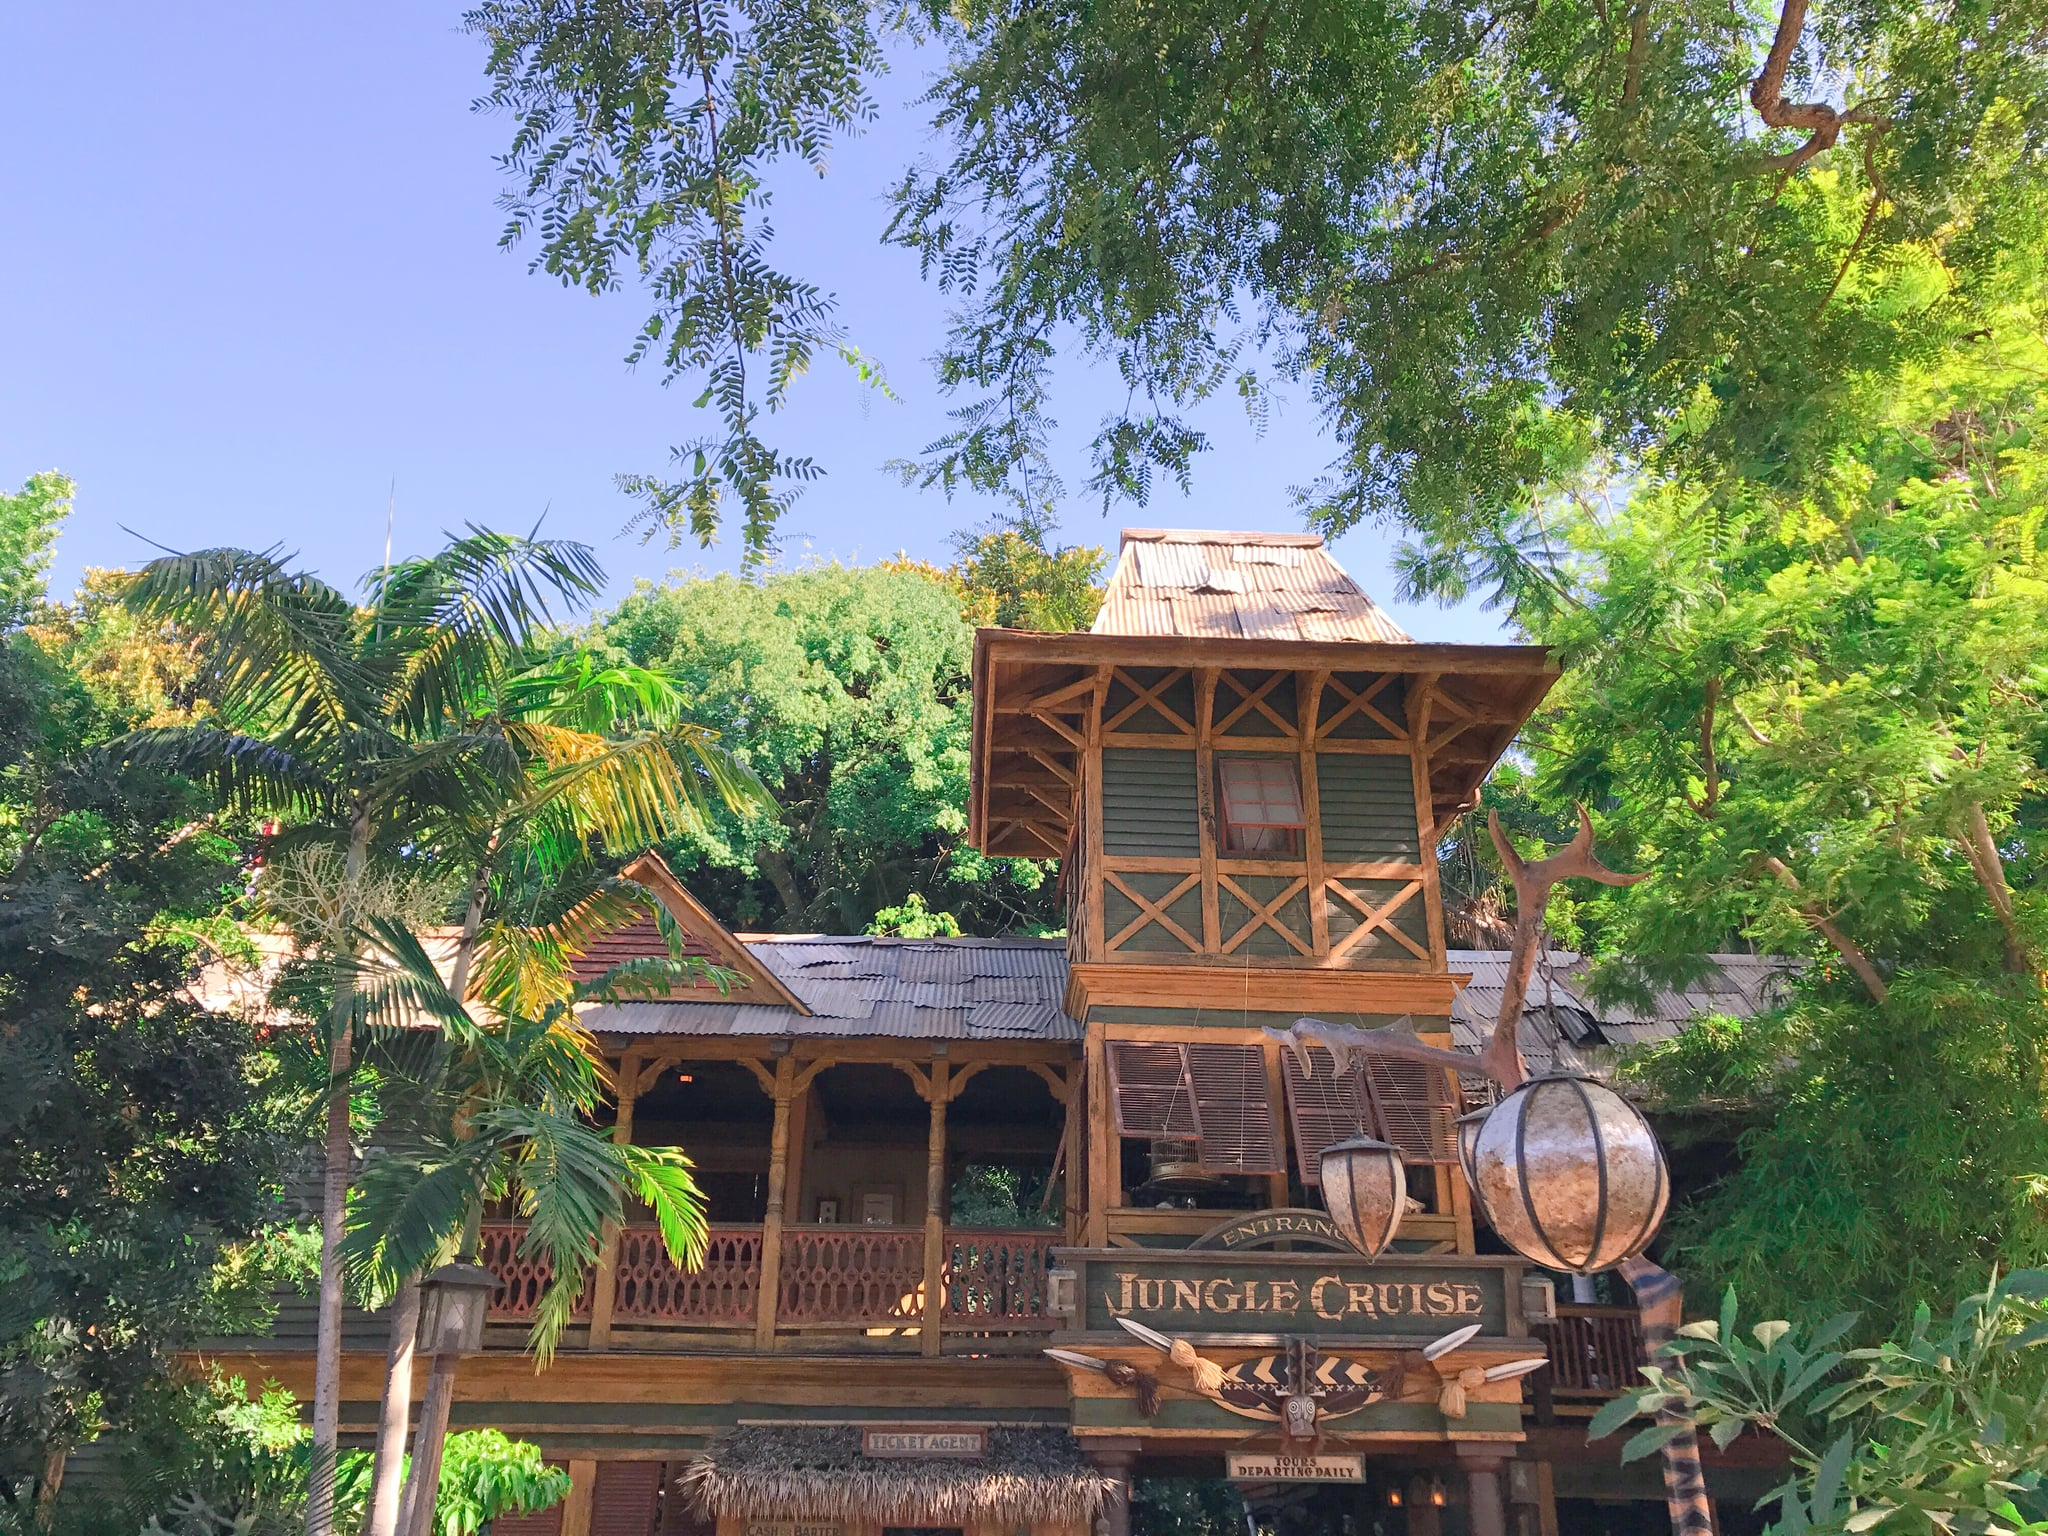 Jungle Cruise The Votes Are In See All The Disneyland Rides Ranked Popsugar Smart Living Photo 37